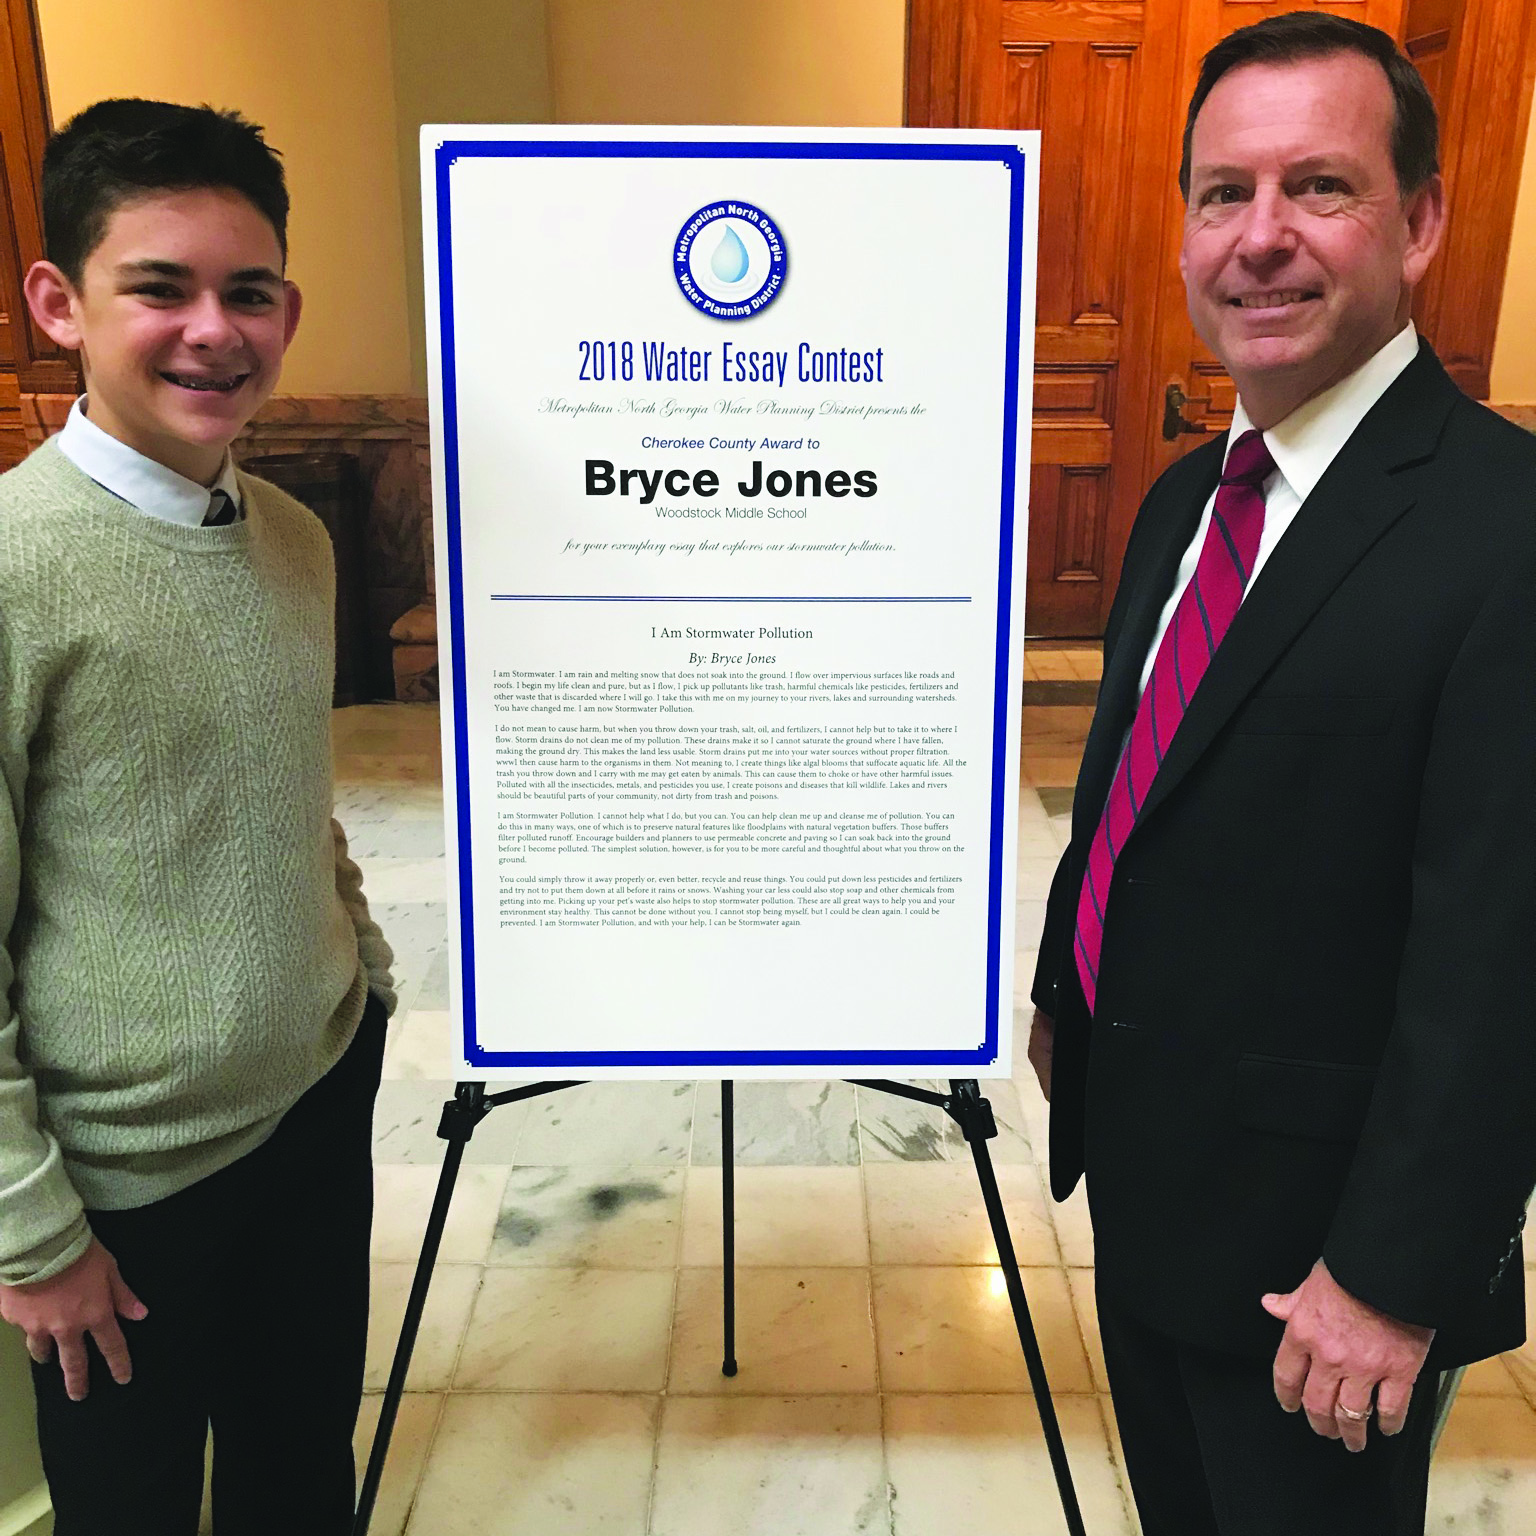 Bryce was joined at the ceremony by his family and Principal David Childress.